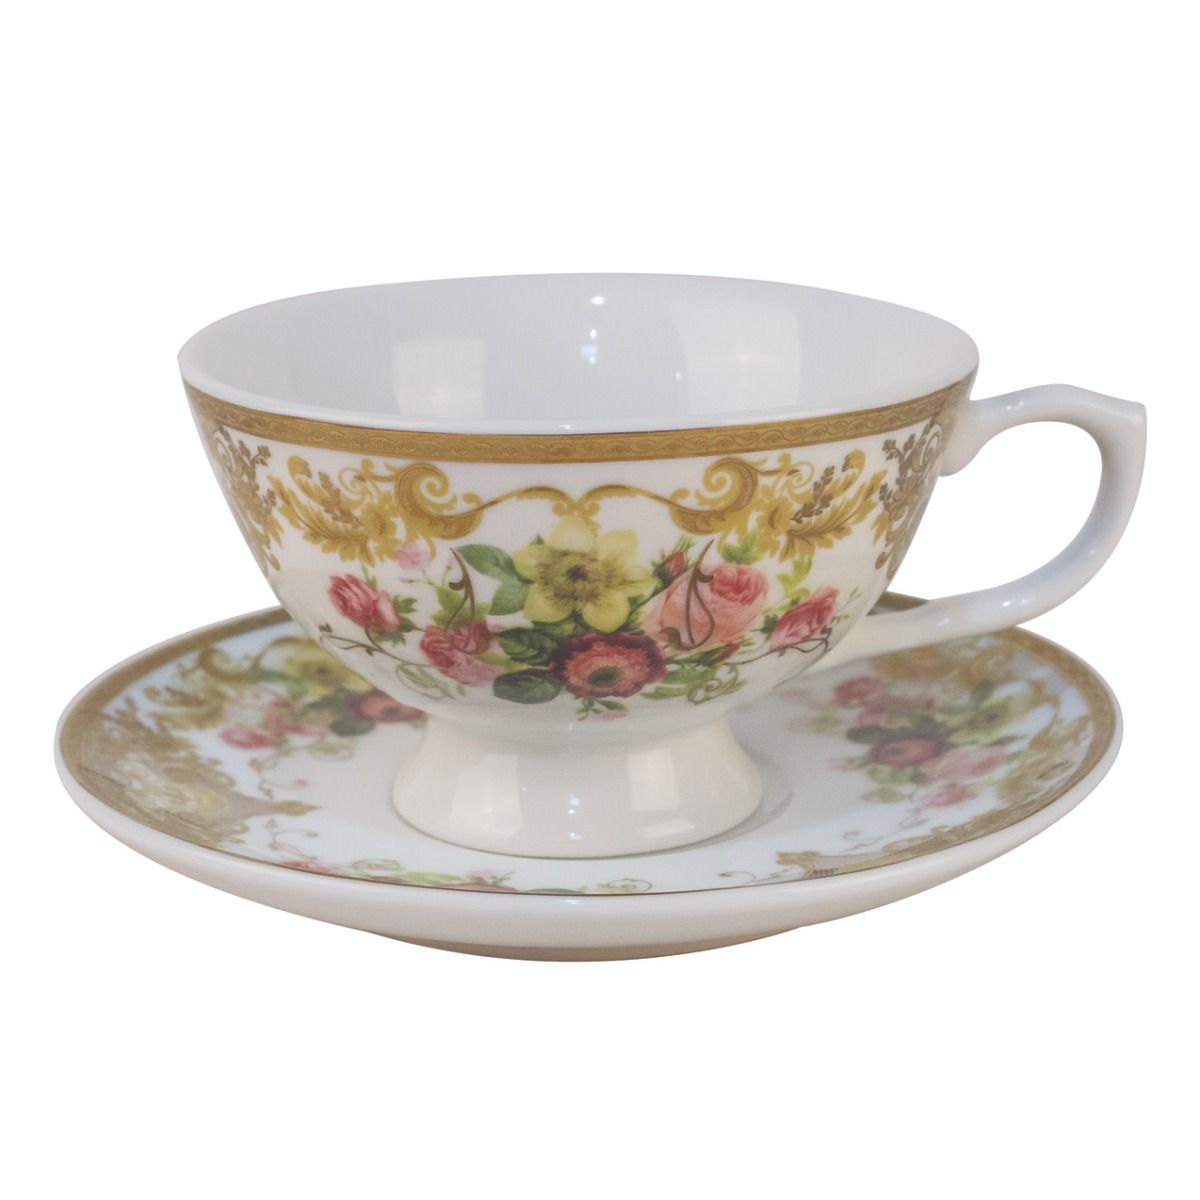 """Pretty Poison teacup - """"you have been poisoned"""""""